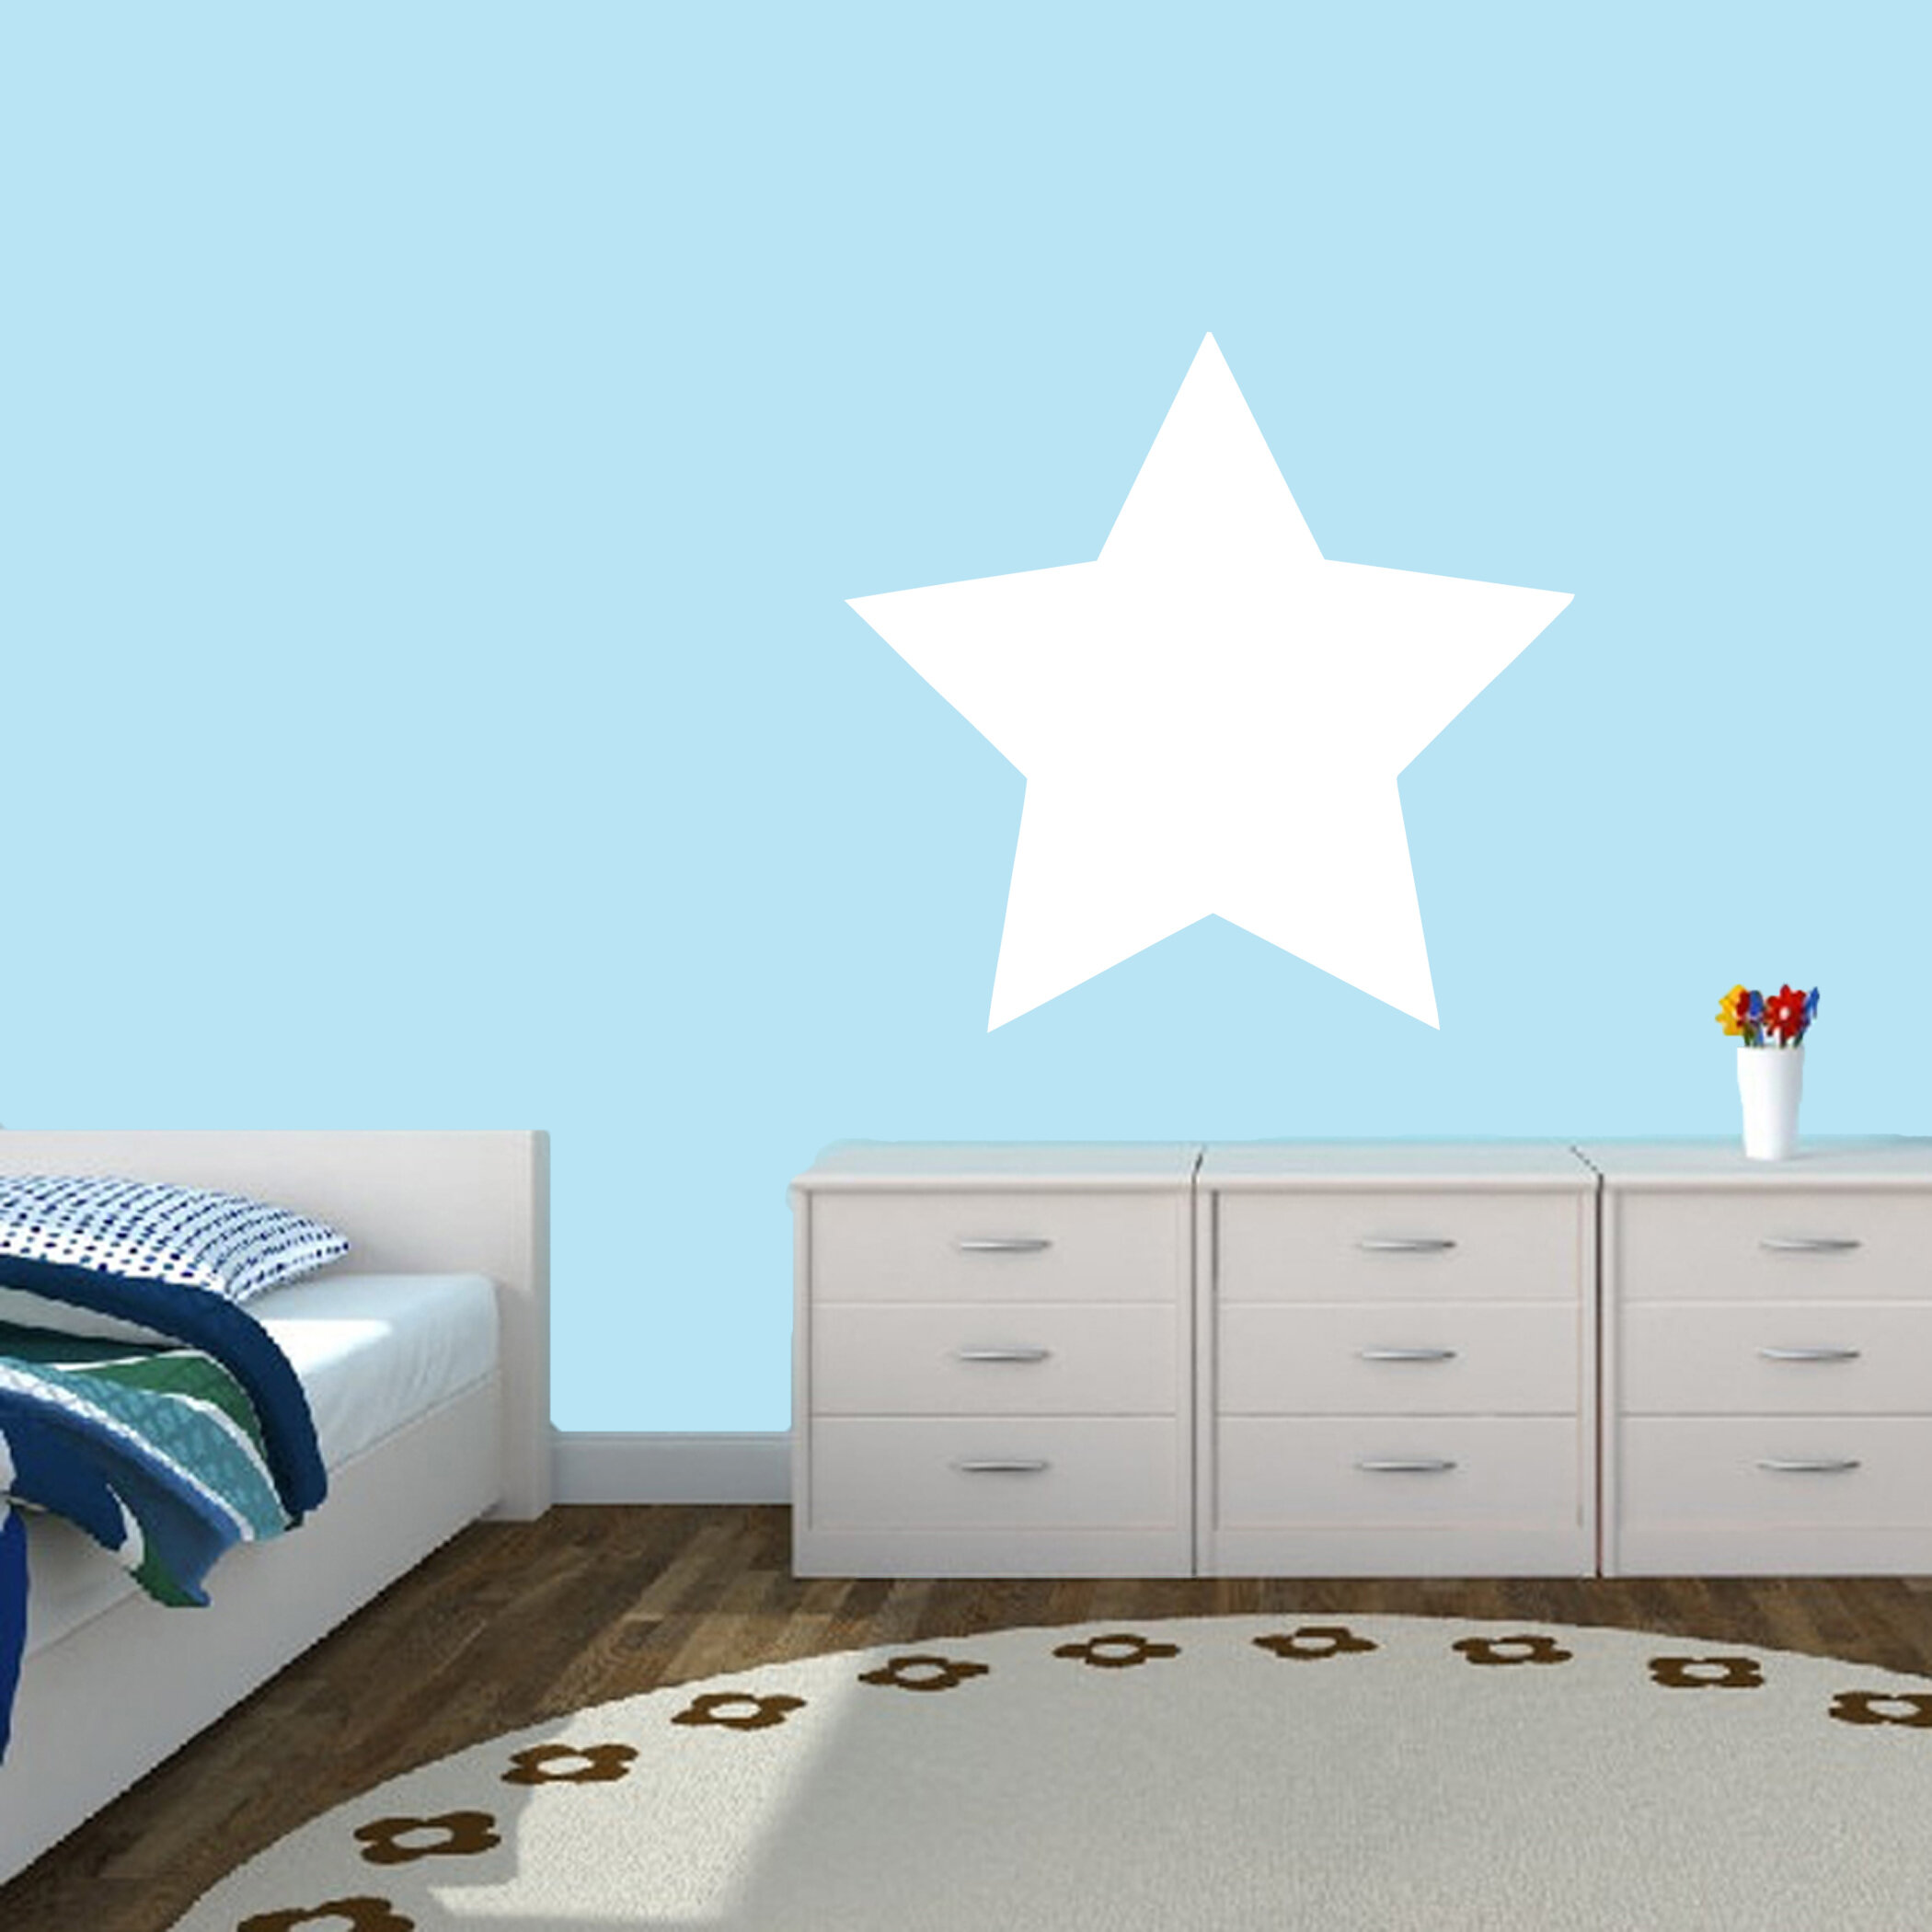 SweetumsWallDecals Dry Erase Star Whiteboard Wall Decal | Wayfair Part 93